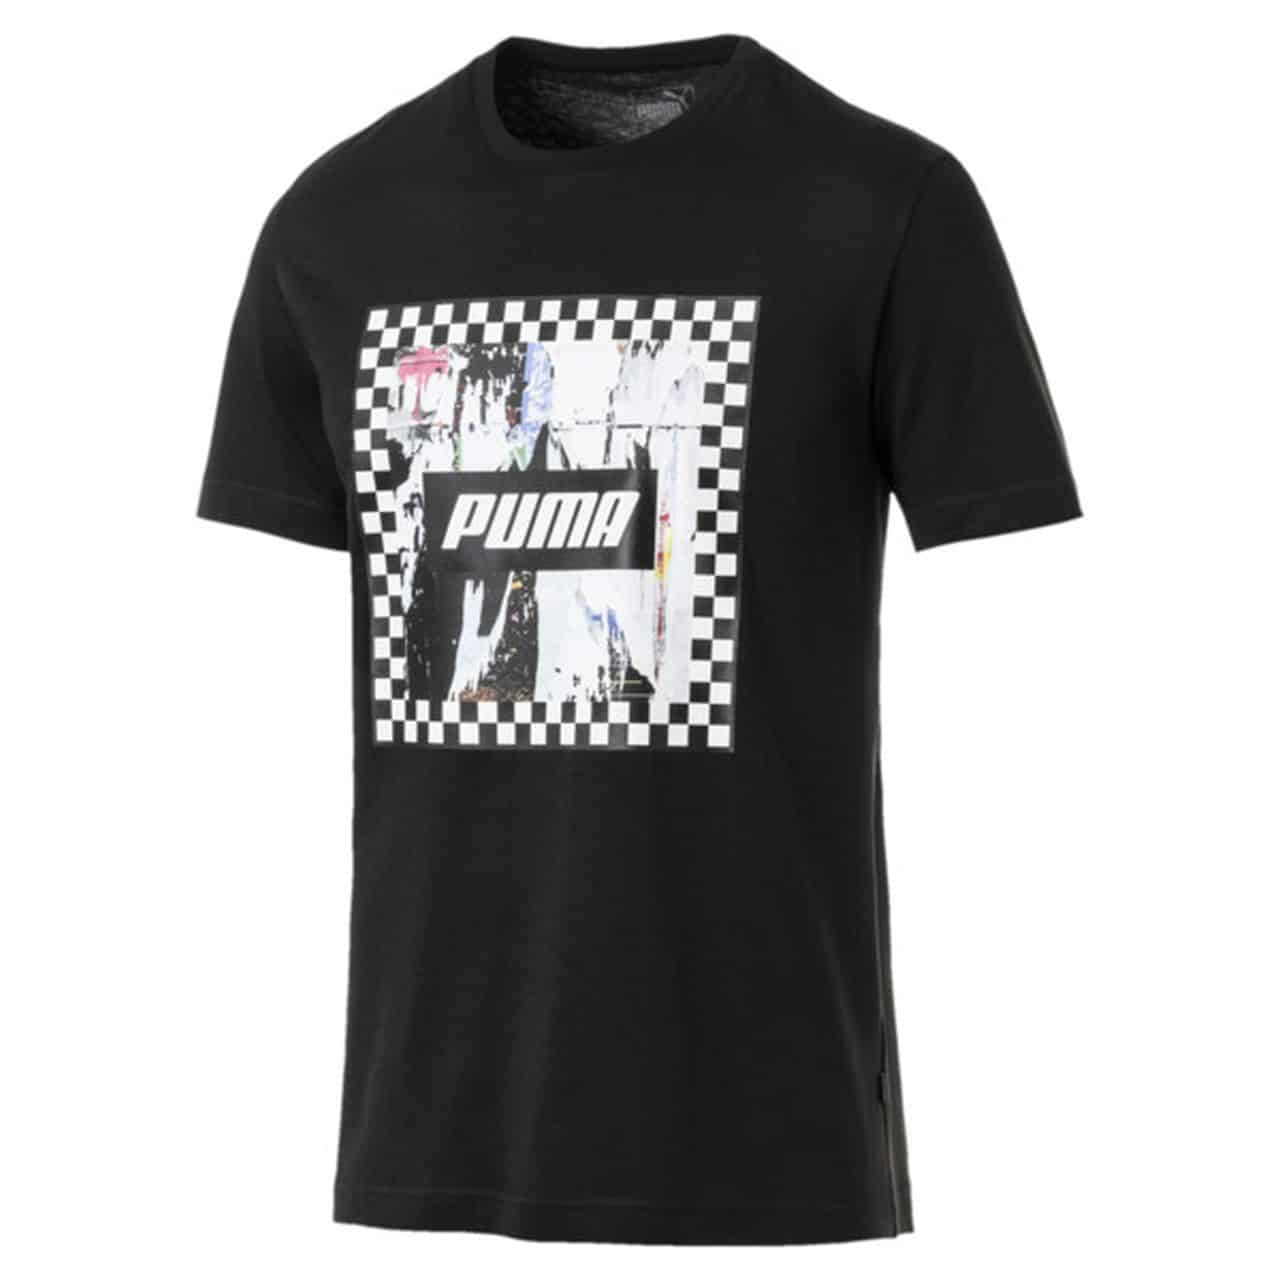 TRICOU ORIGINAL PUMA CHECK GRAPHIC TEE - 854073 01